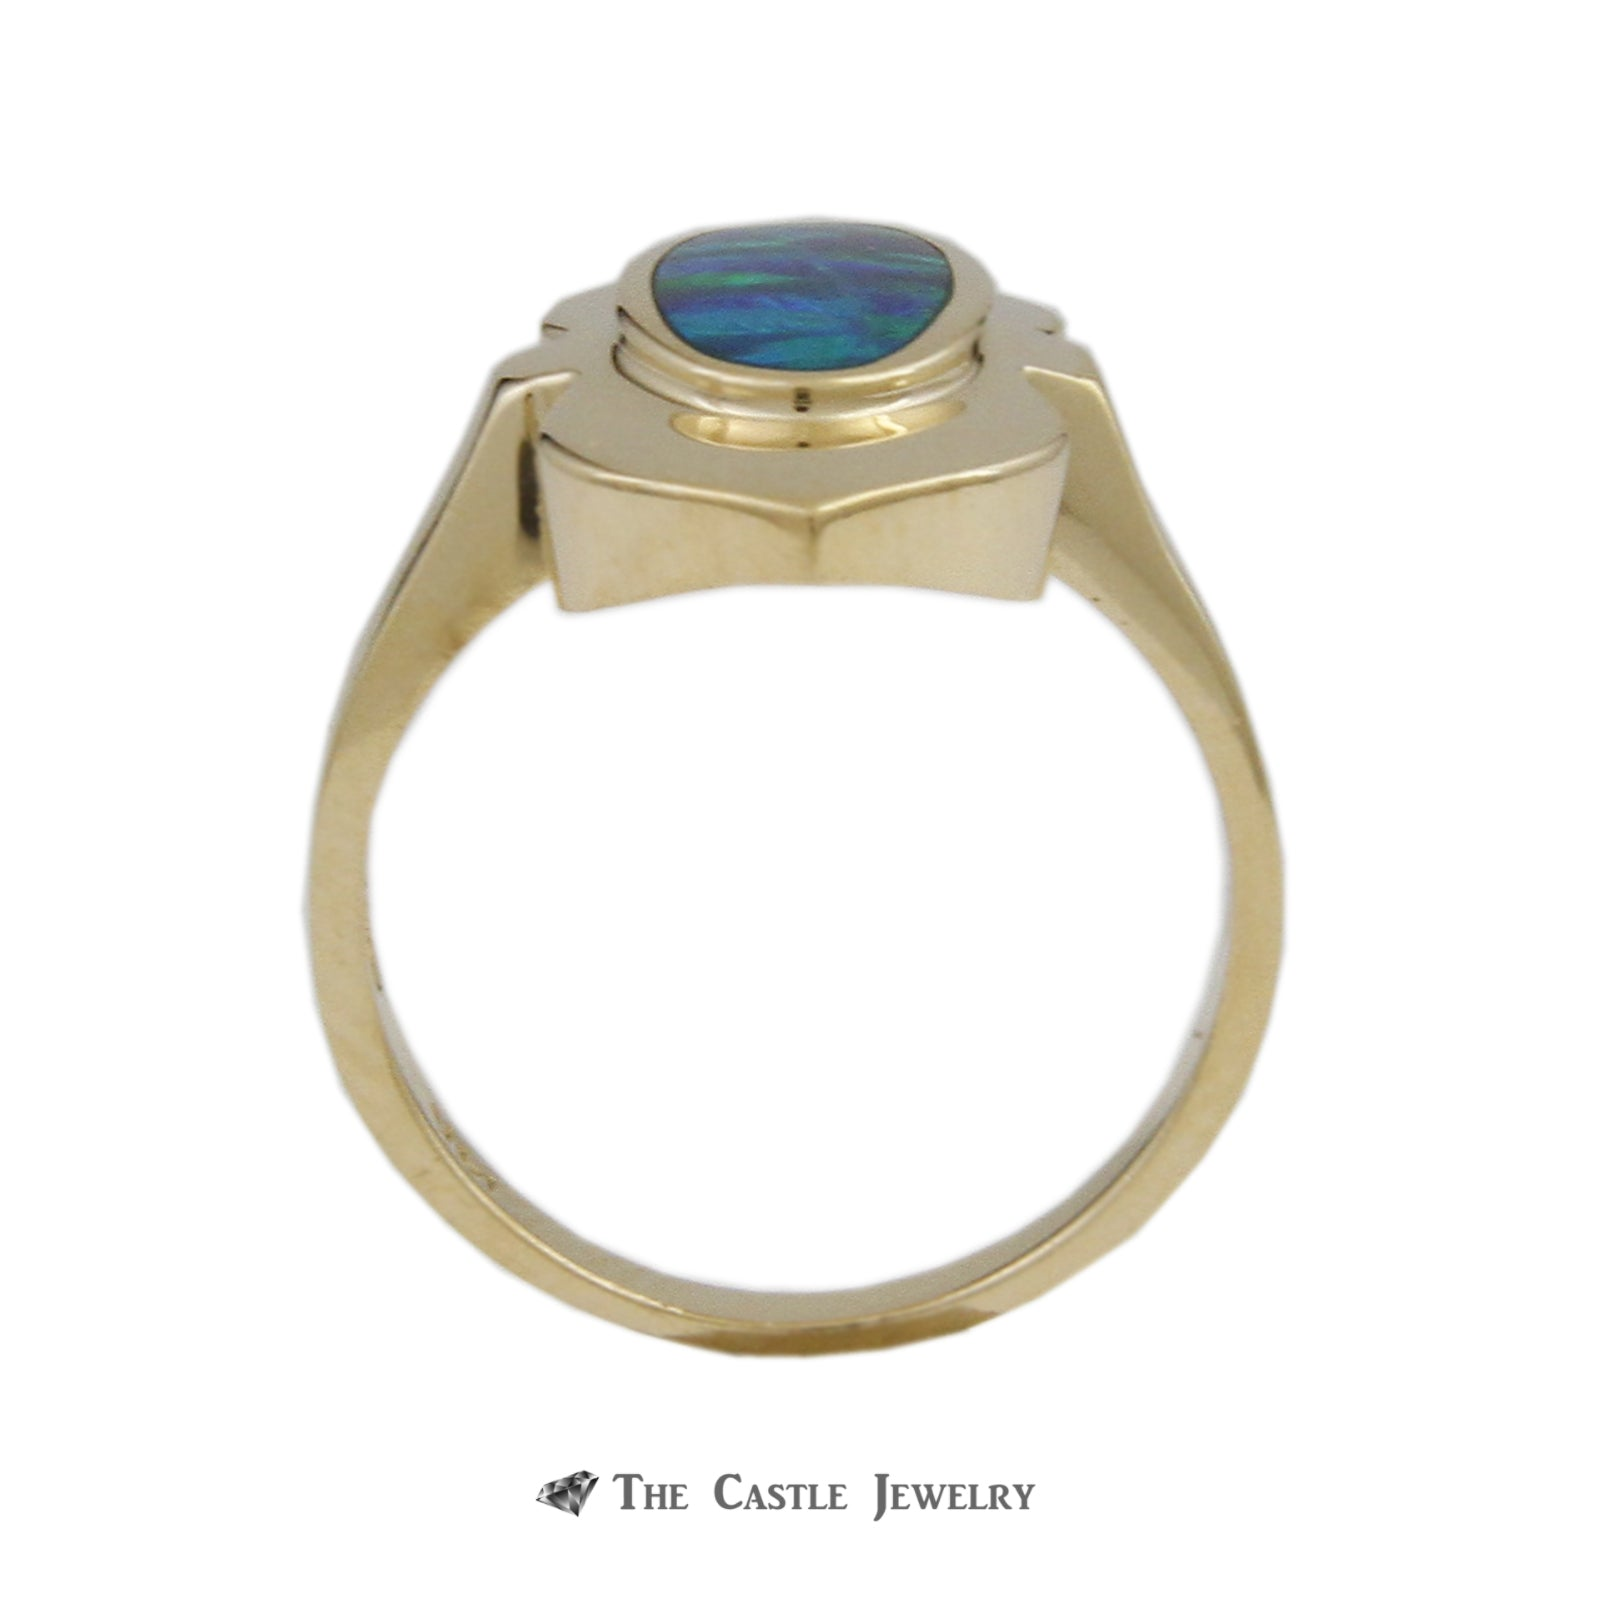 Oval Black Opal Bezel Set in Polished Shield Design Mounting Crafted in 14K Yellow Gold-1